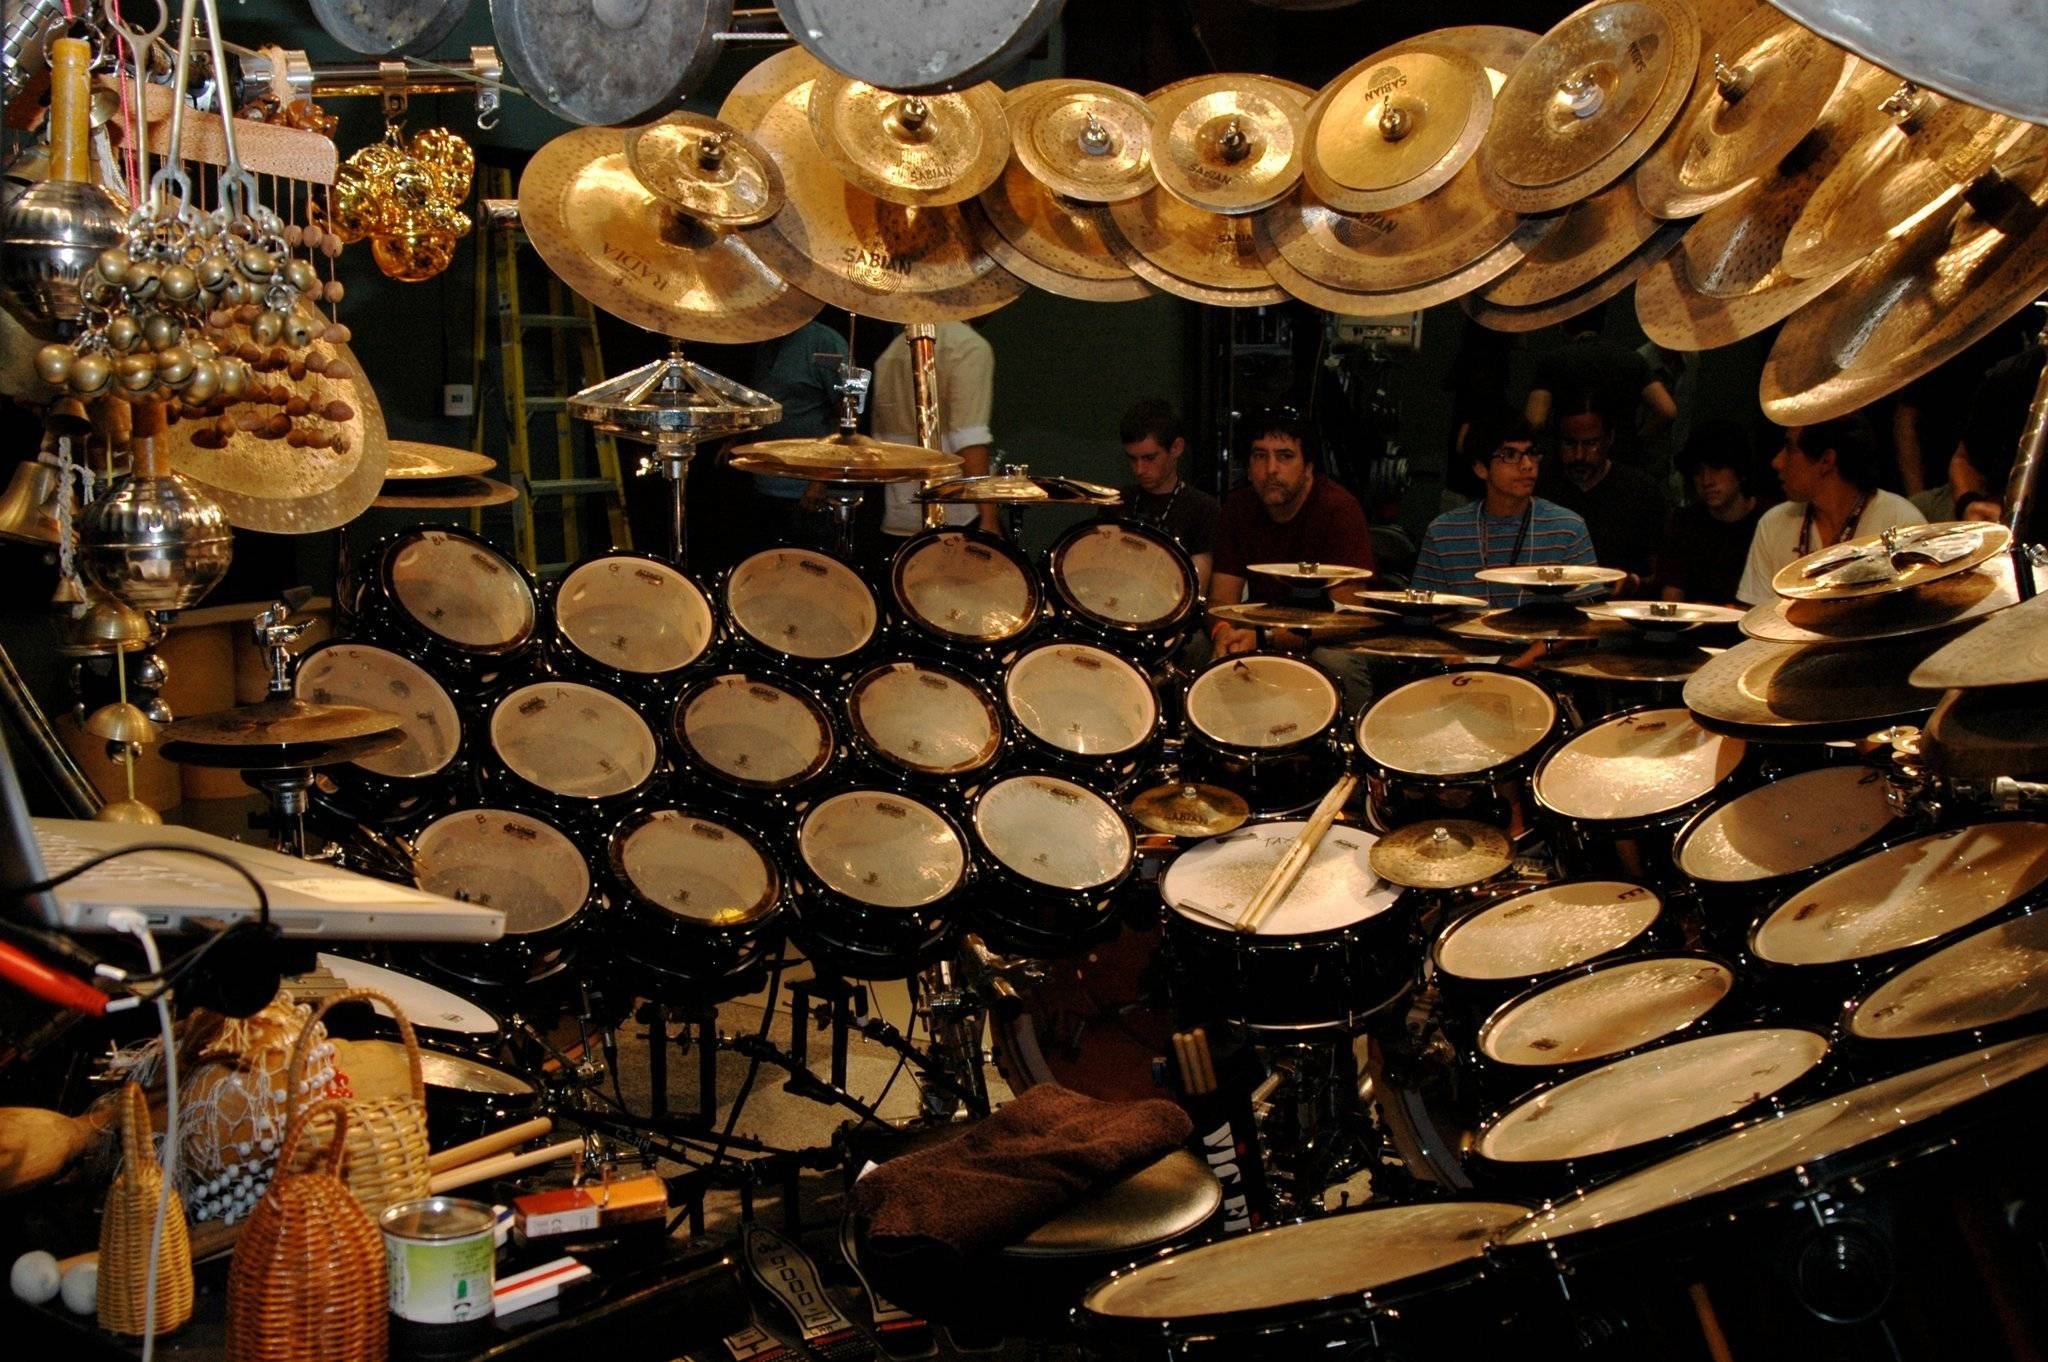 A Drummers Guide - Showing a massive drumkit